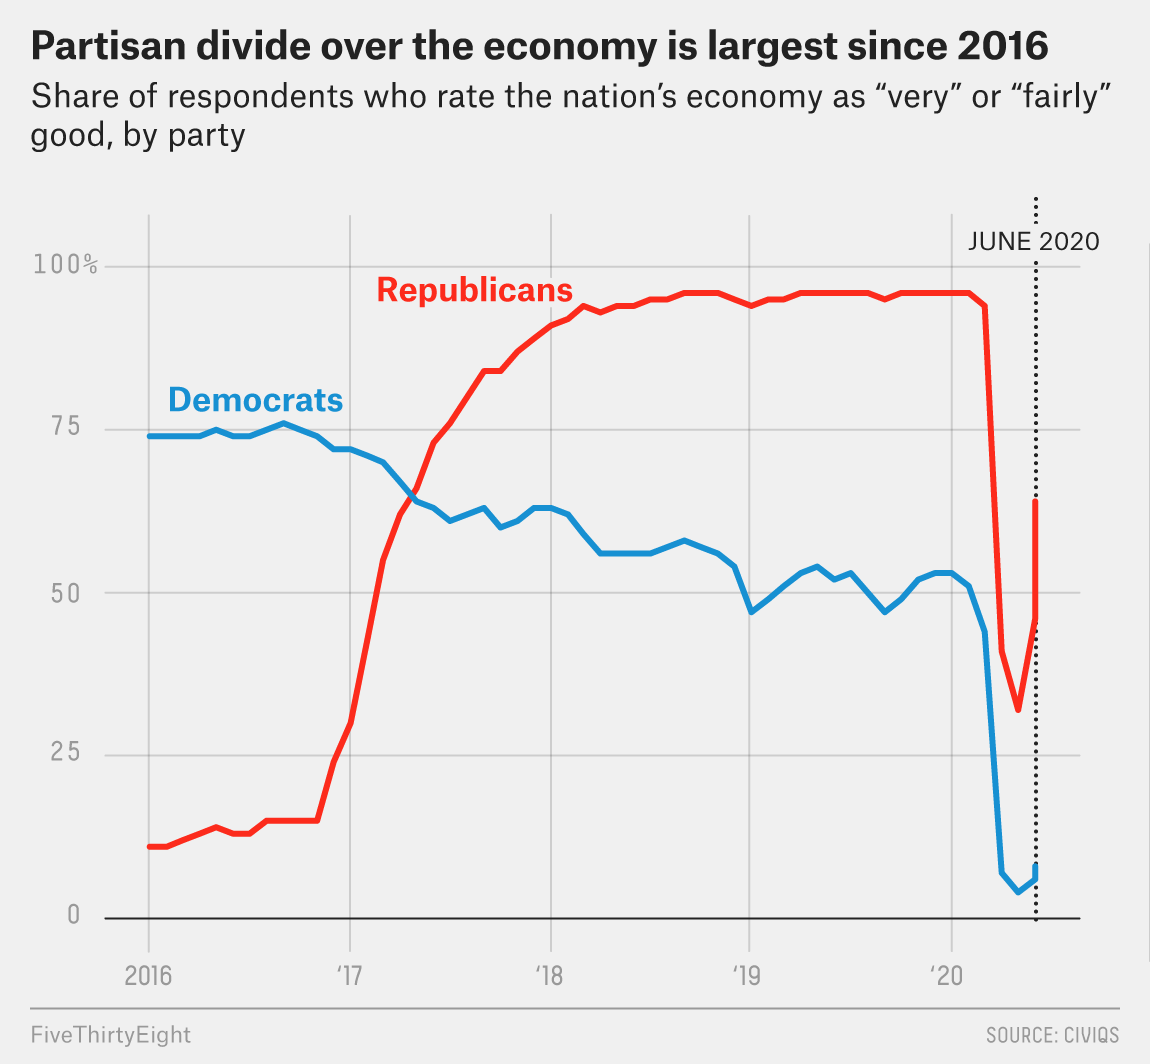 In 2008, Everyone Thought The Recession Was Bad. But in 2020, Many Americans' Views Depend On Their Party. 2